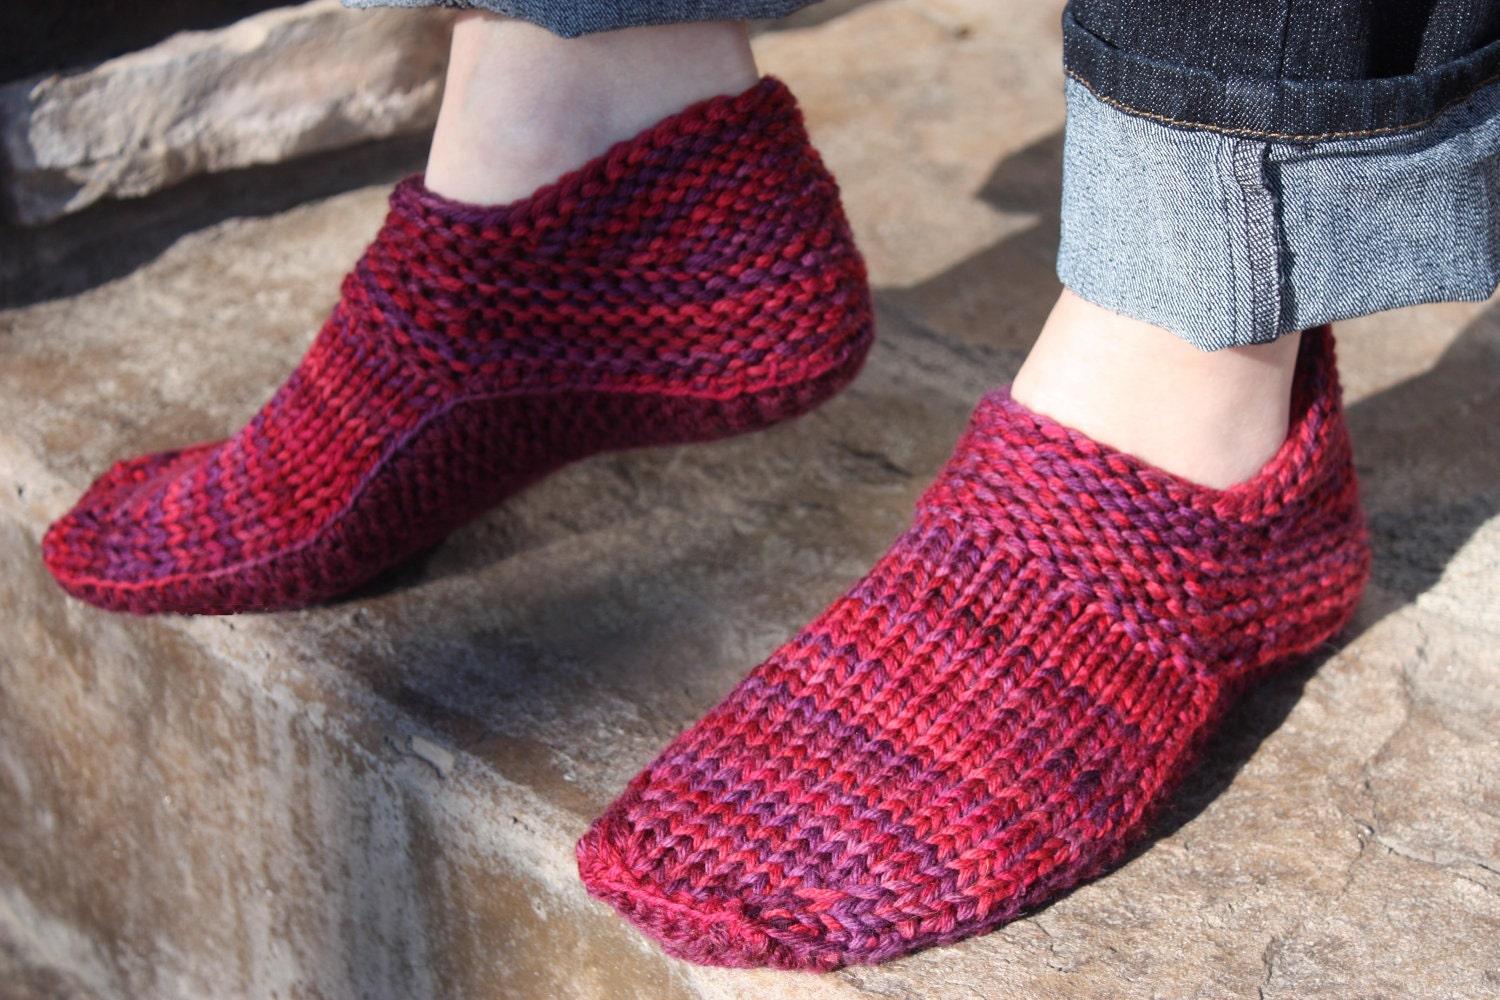 Knit Slippers Pattern : Options Slippers PATTERN Knit knit w/crochet plus Felting